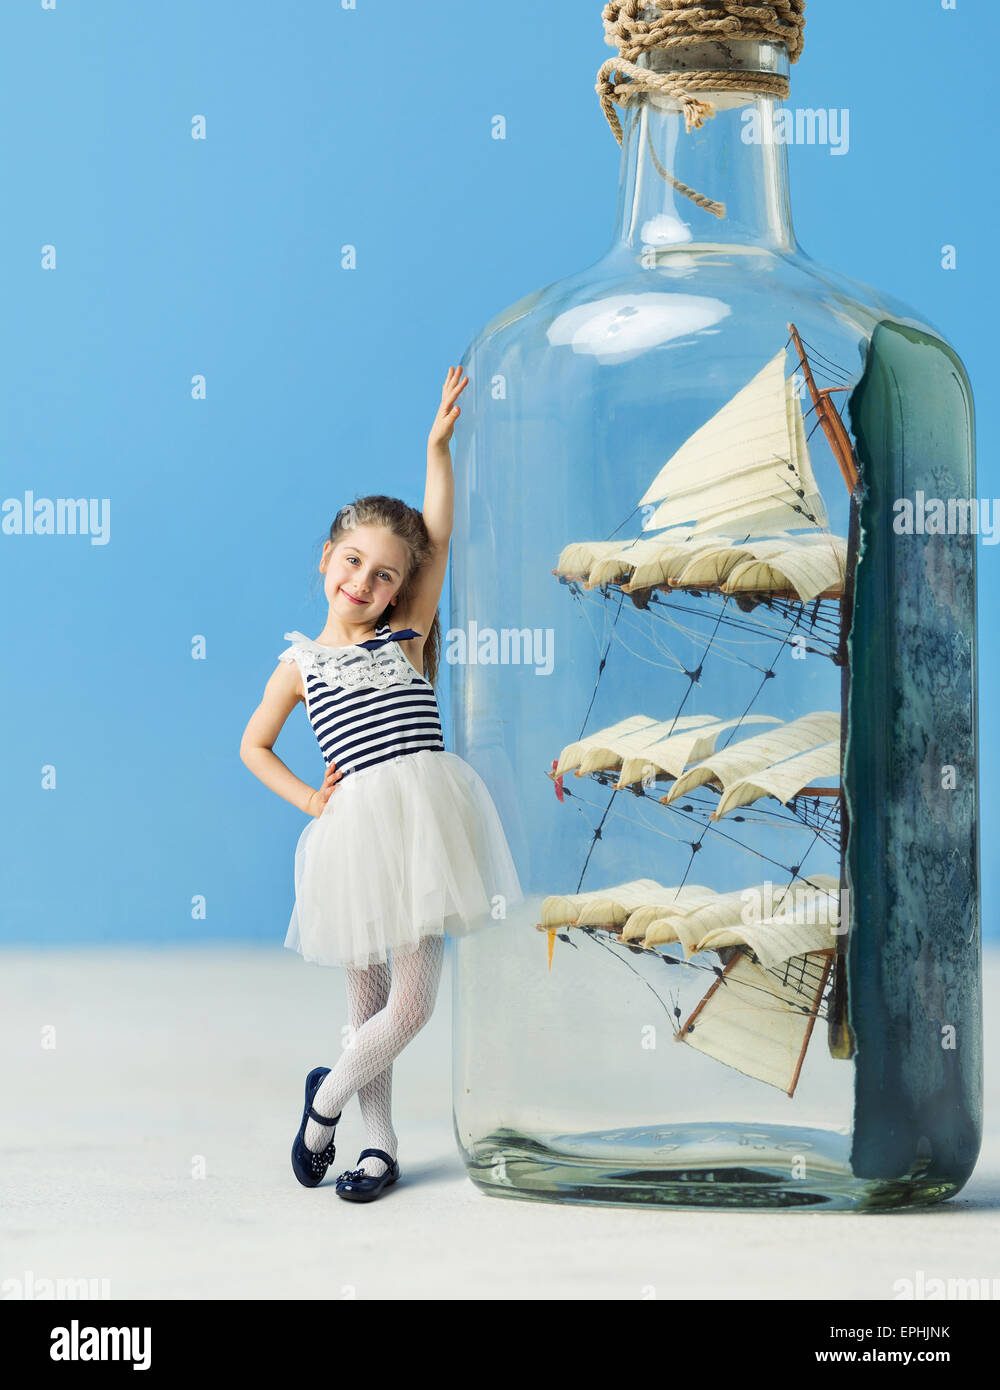 Little lady next to a ship in a bottle - Stock Image